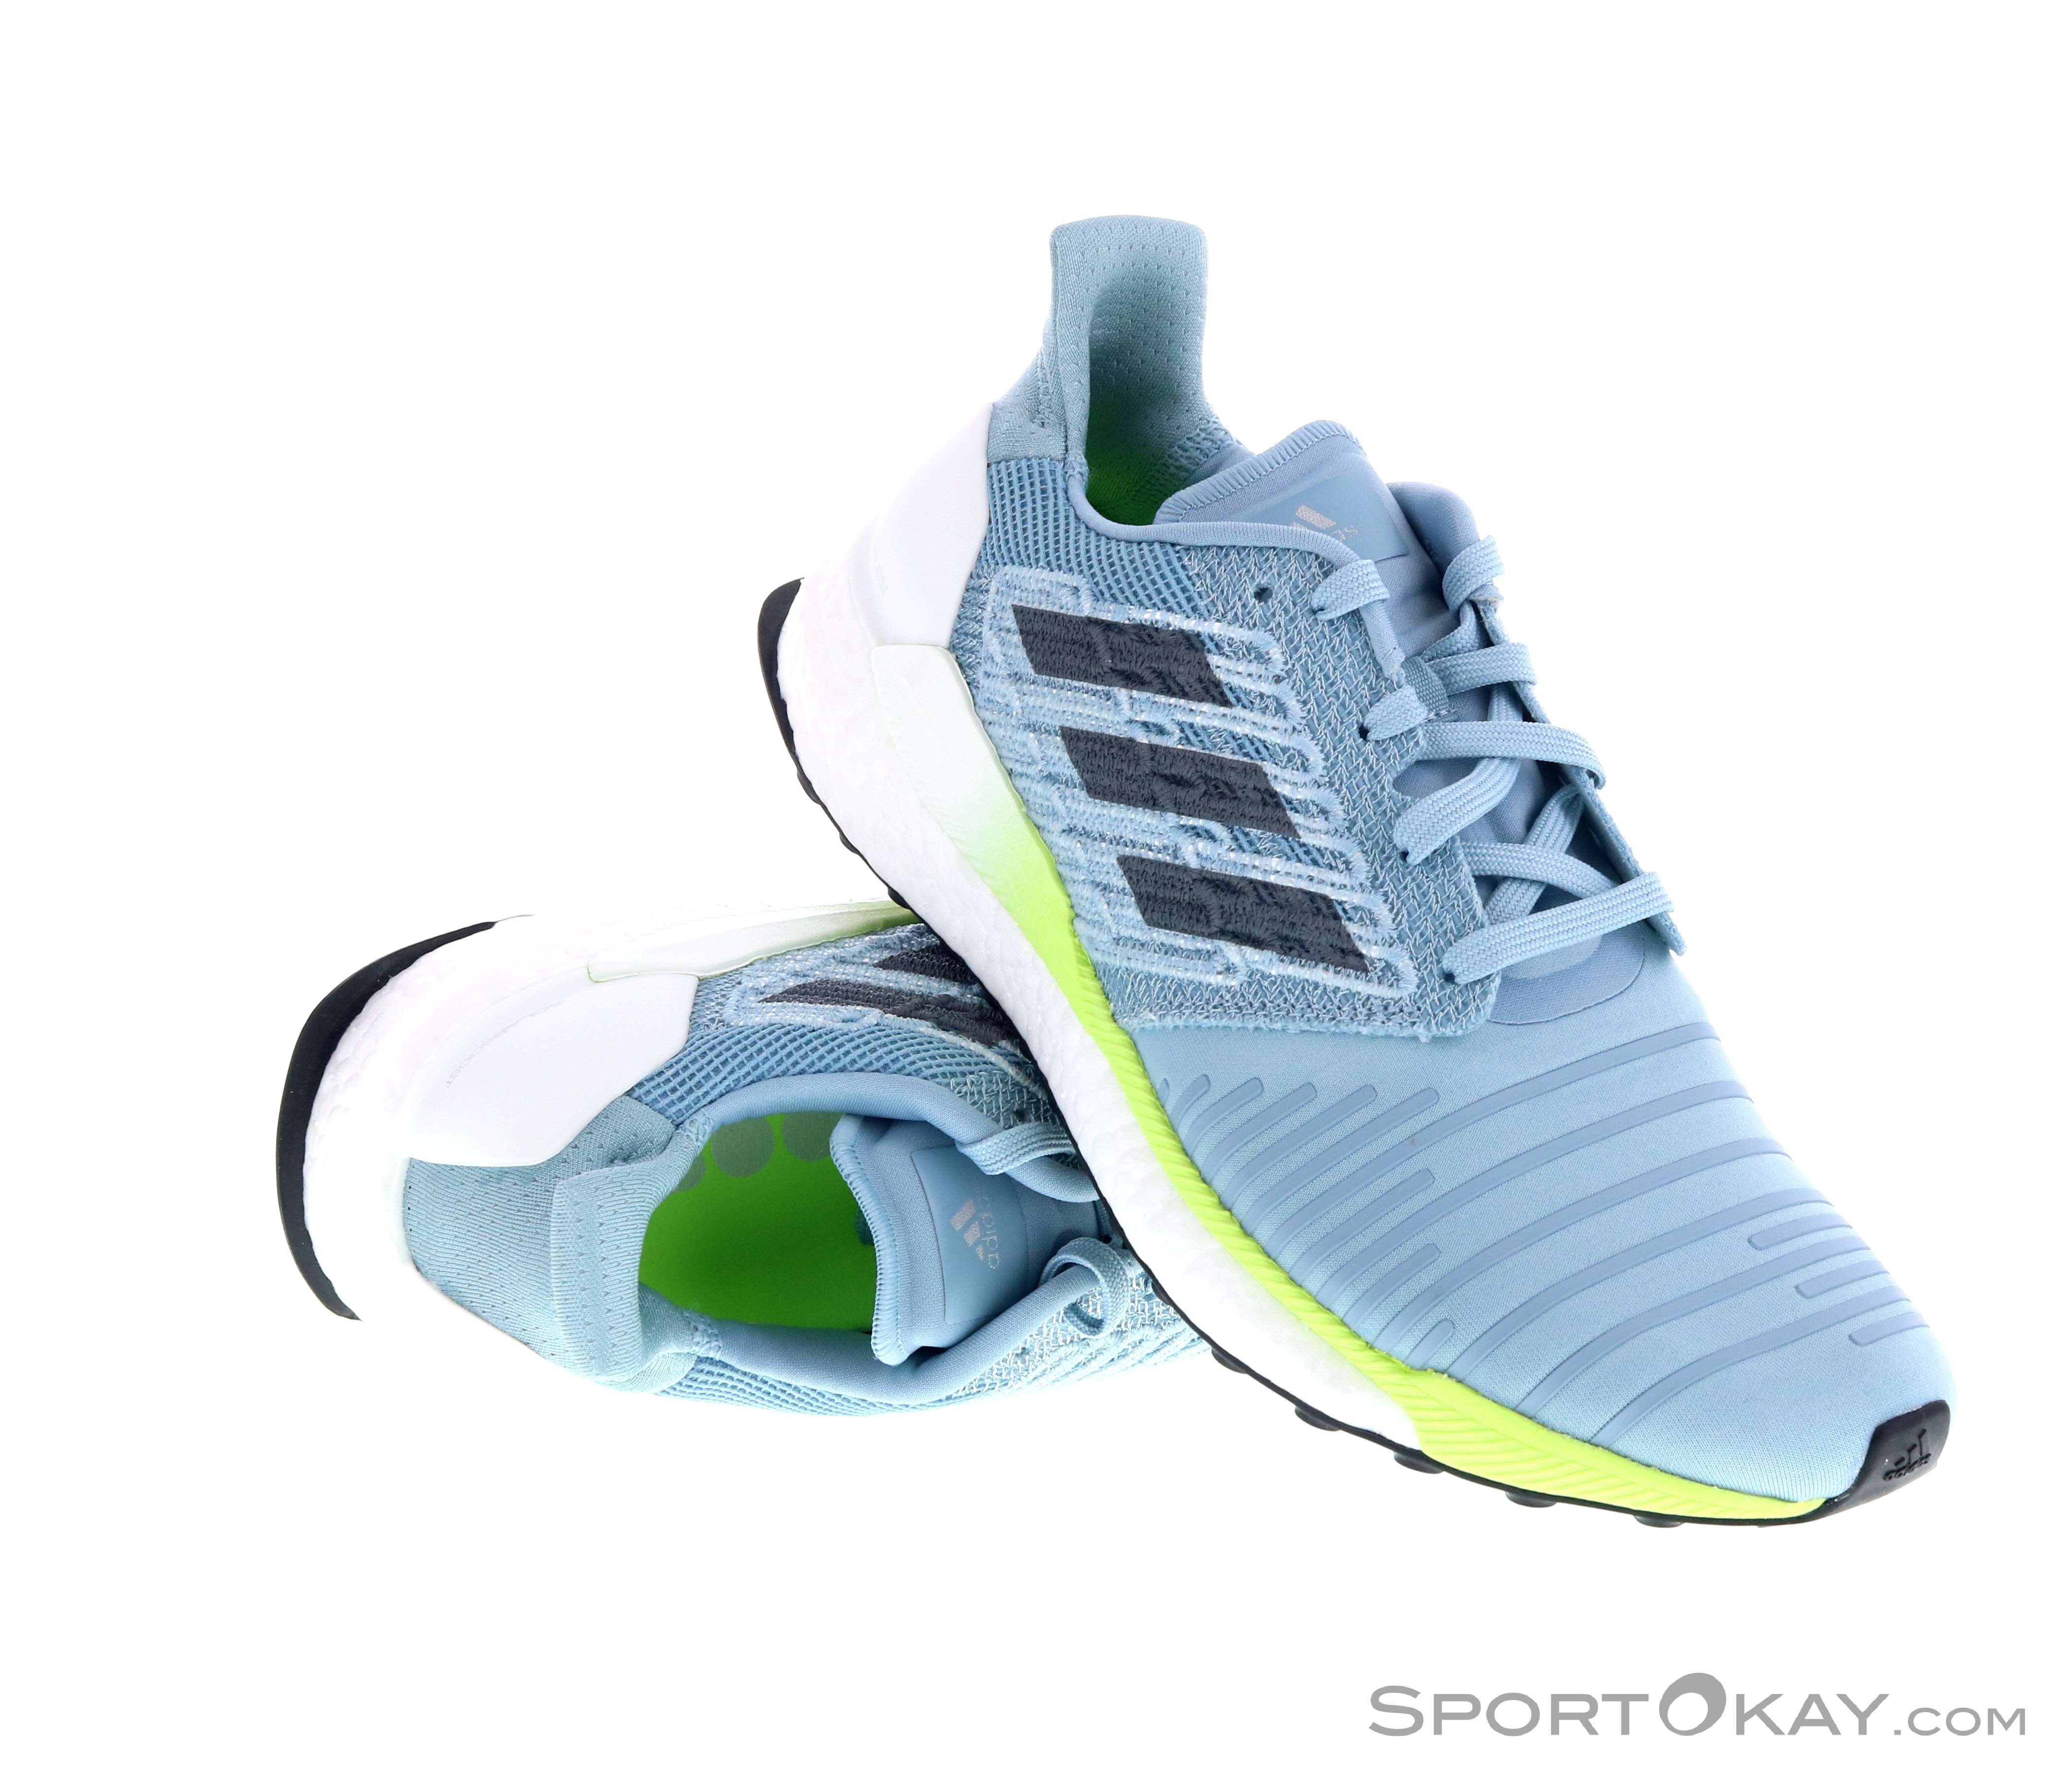 1423e2a4acddd adidas Solarboost Womens Running Shoes - Fitness Shoes - Fitness ...